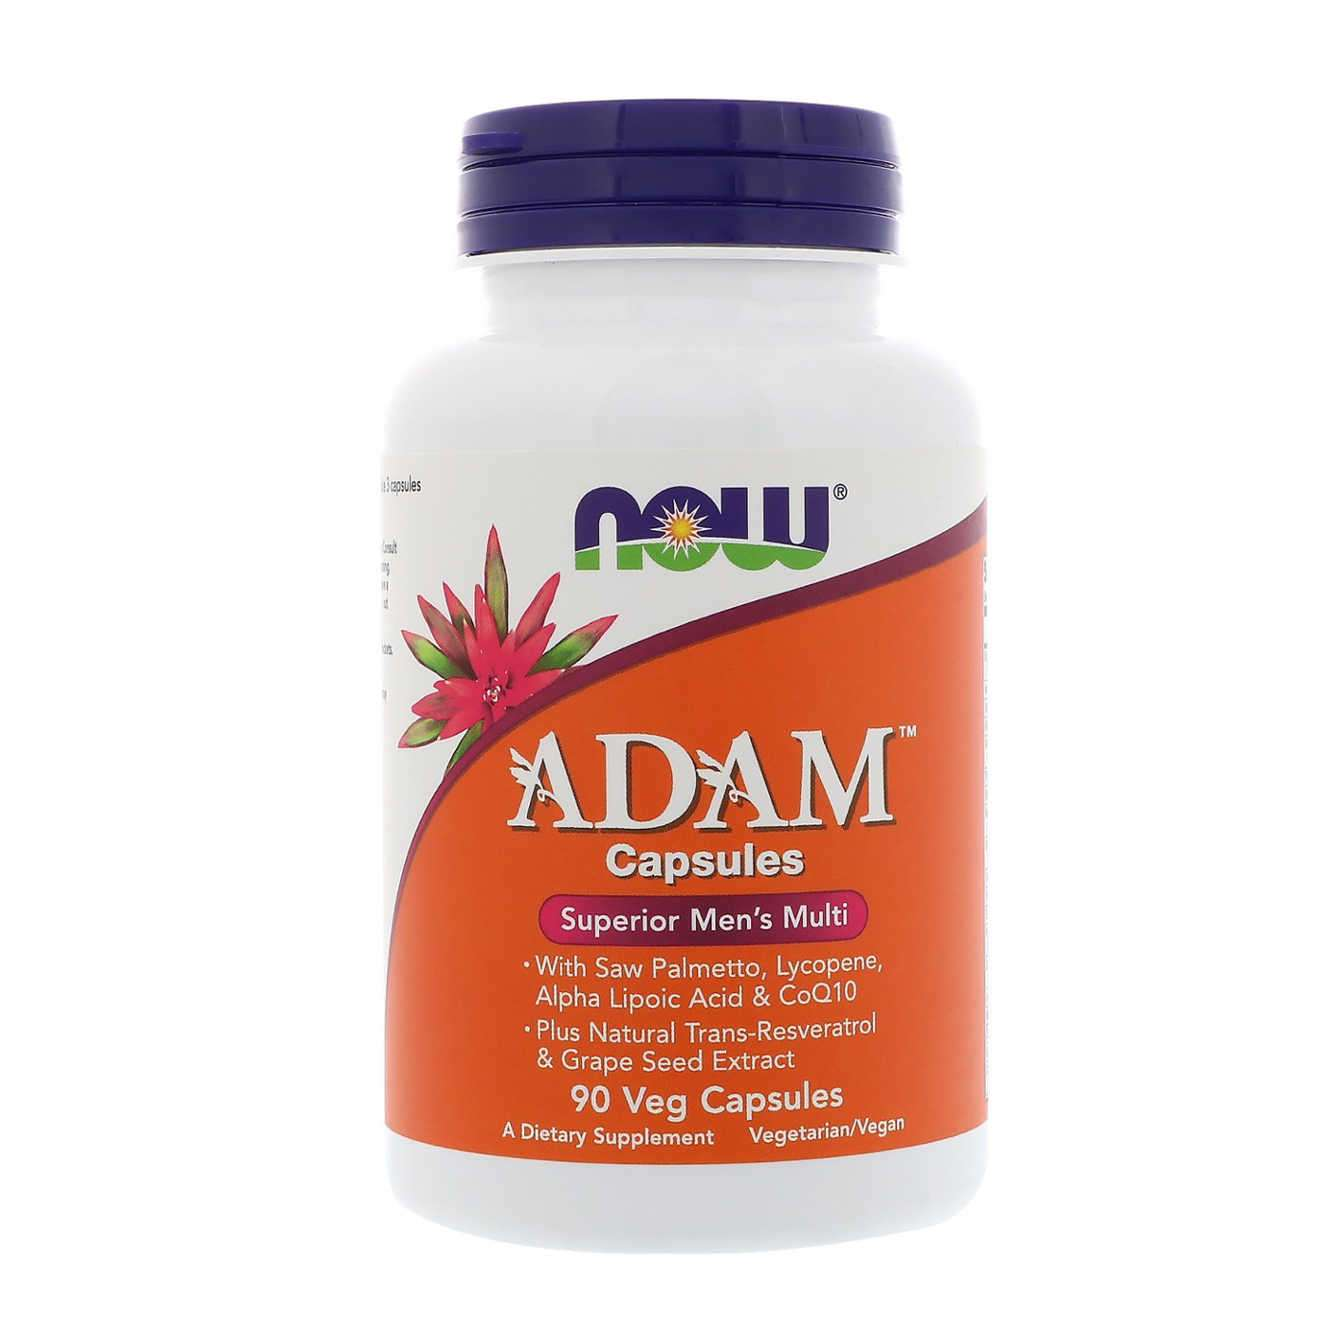 ADAM™ MULTIVITAMINS FOR MEN VEG CAPS - 90 veg caps